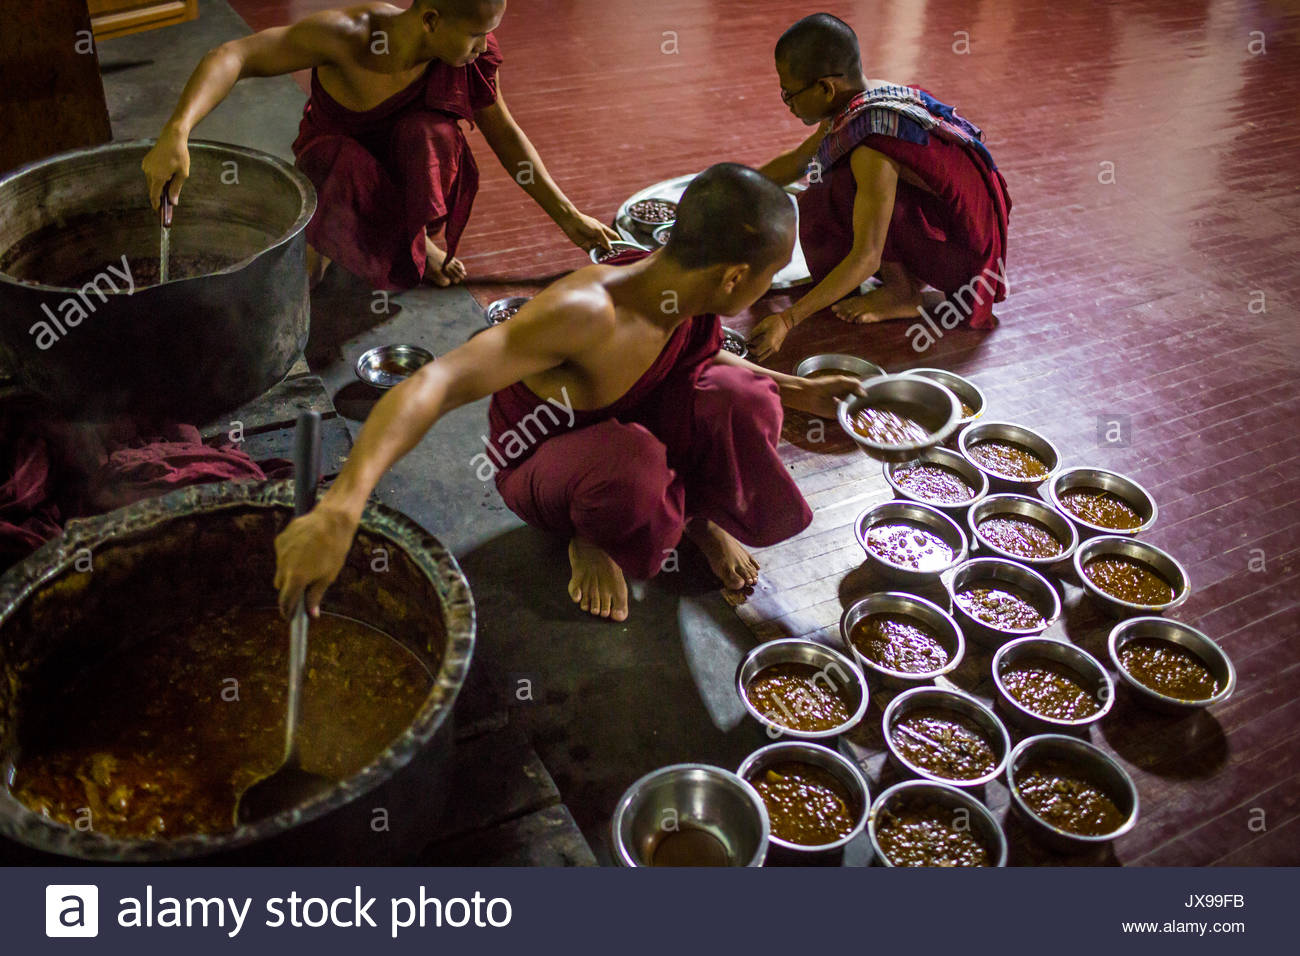 Two young monks place small bowls of food onto a tray for a third monk to deliver. - Stock Image